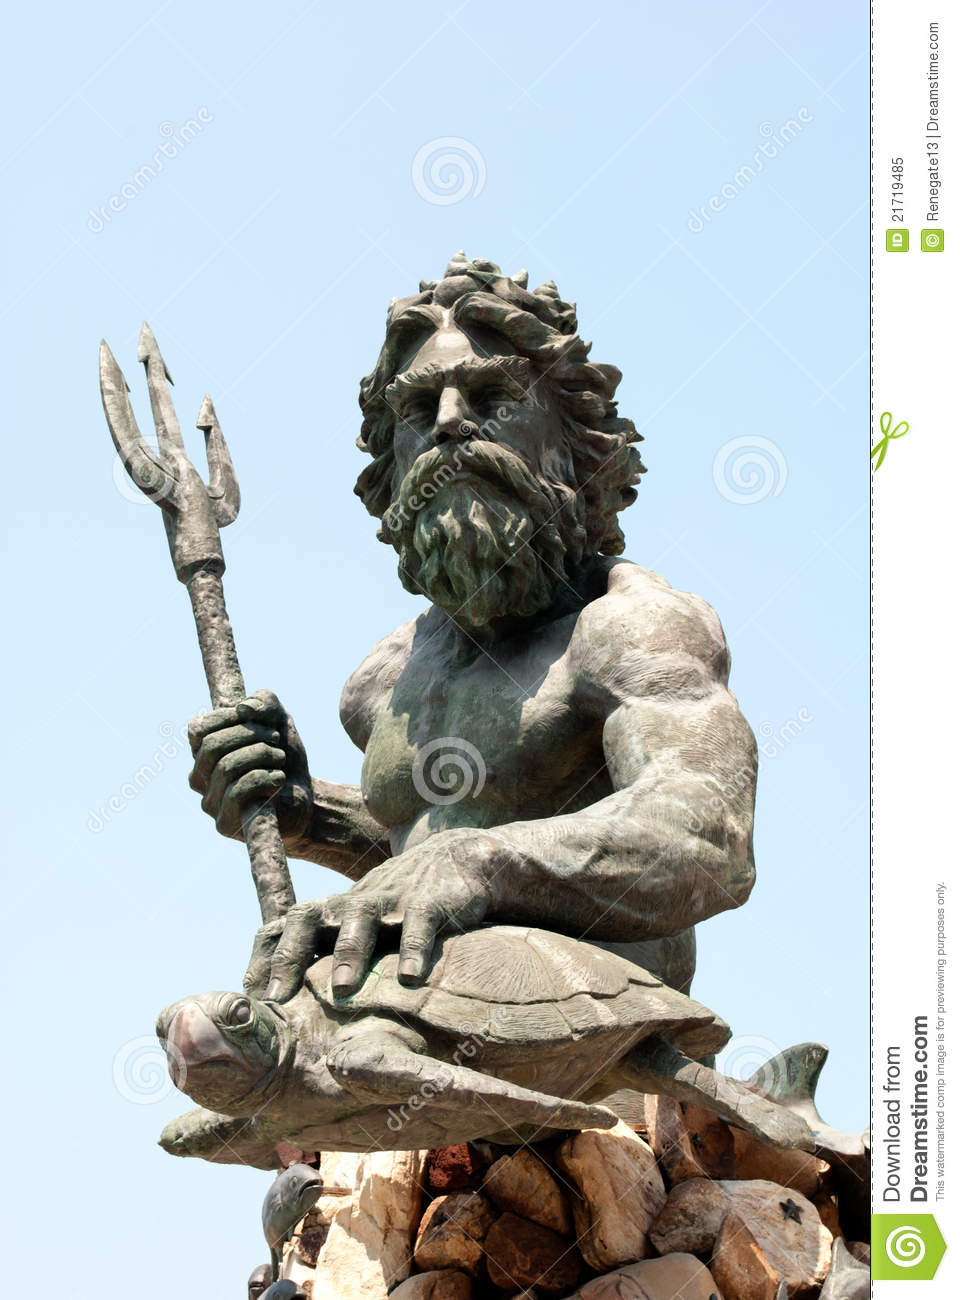 Statue of poseidon stock image image of body ancient 21719485 - Poseidon statue greece ...